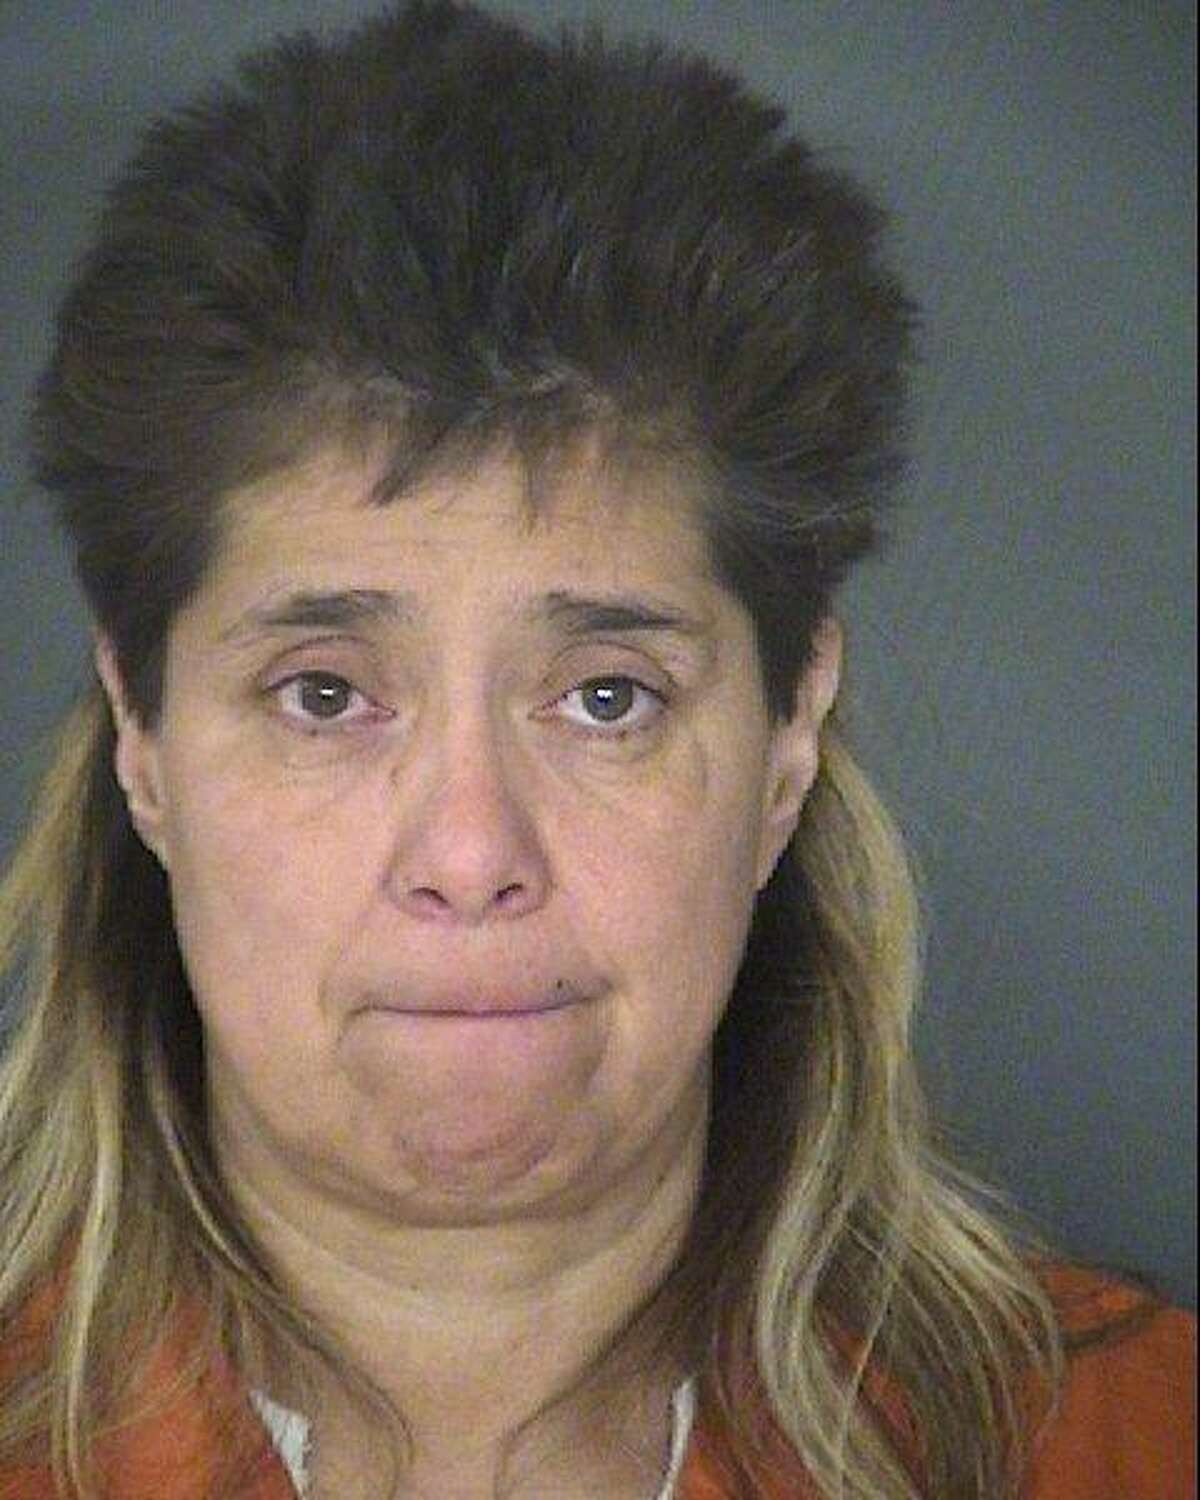 Carol Ann Ybarra Charge: Driving while intoxicated - third or more Charge Date: April 16, 2015 (during Fiesta)